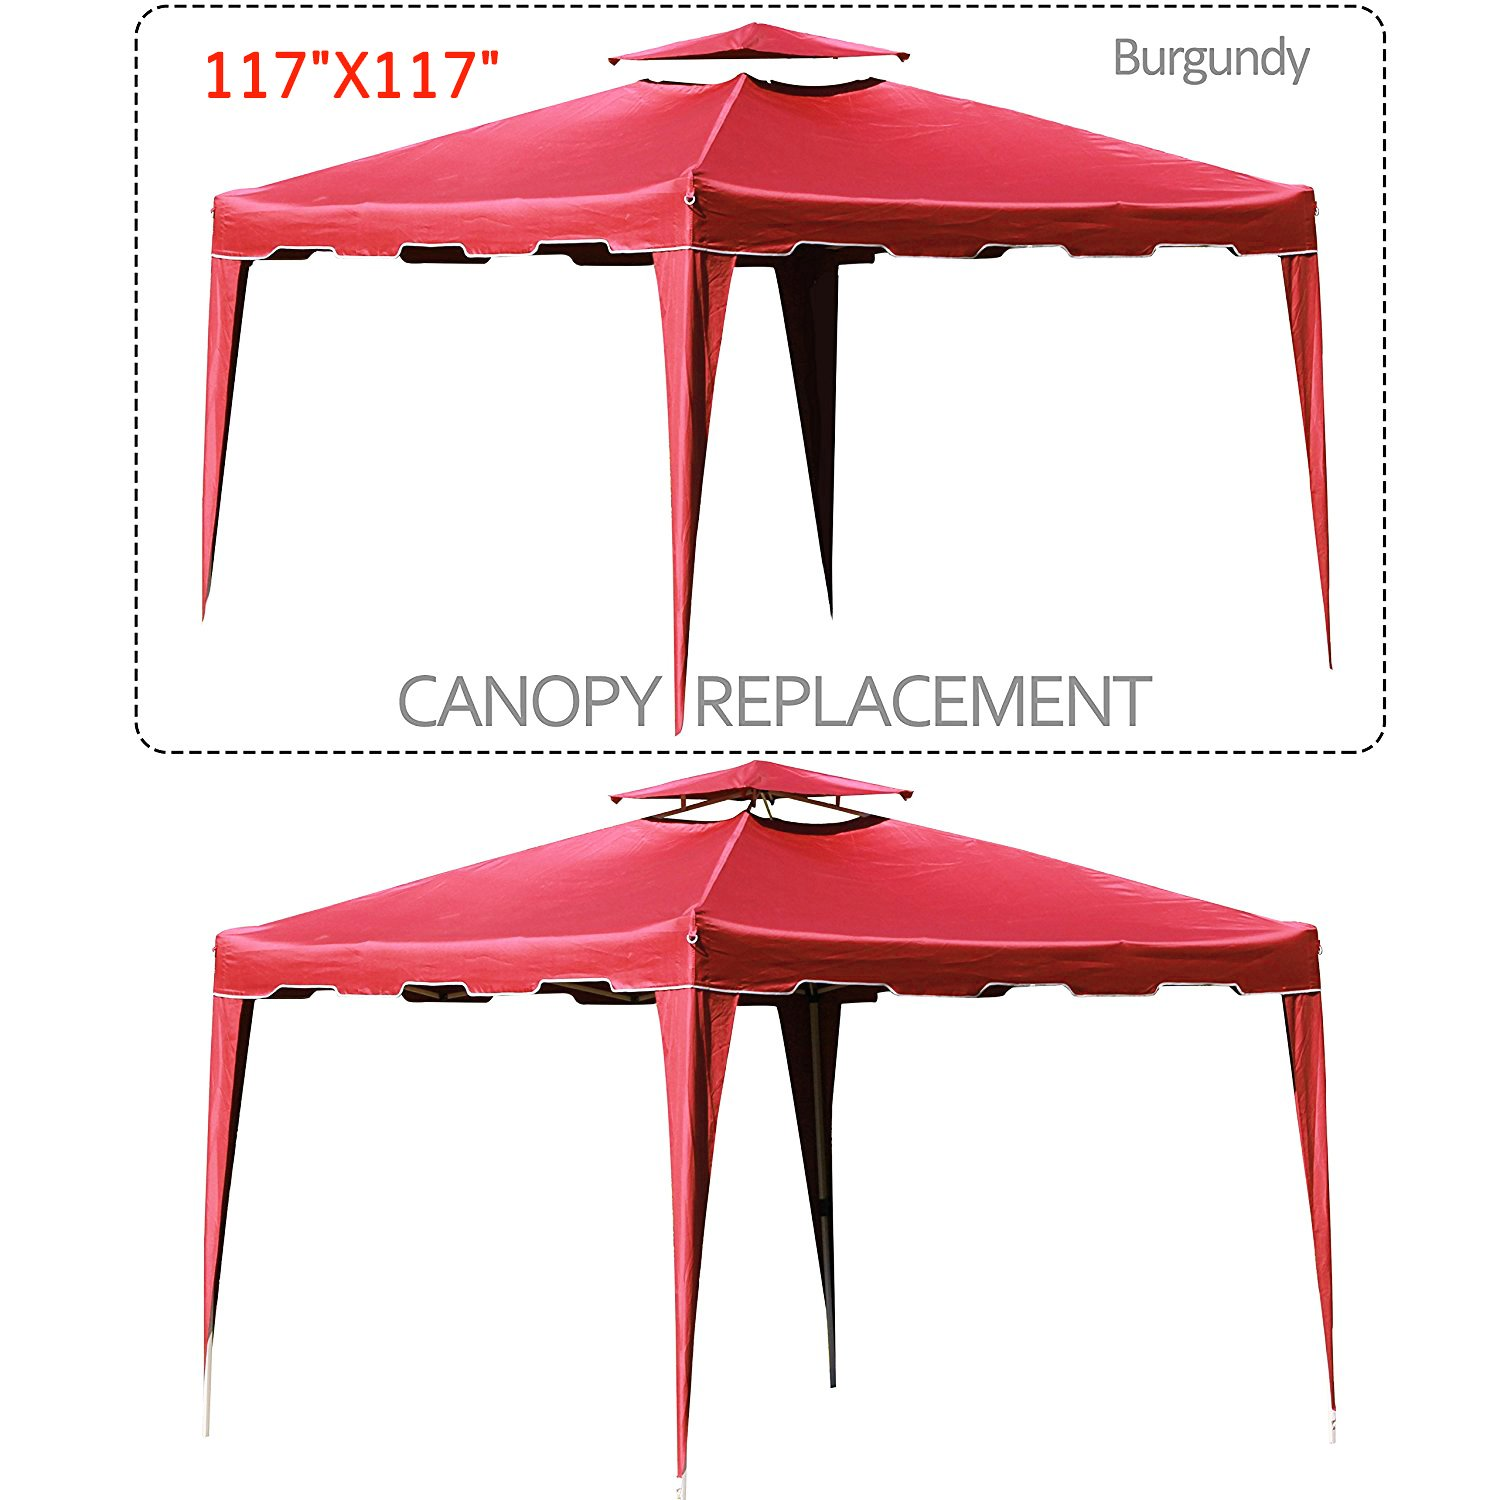 Cloud Mountain 117'' X 117'' Gazebo Replacement Canopy Top Cover, 2-tier UV Protect Resist Light Rain for Outdoor Patio Lawn Sun Shade Tent, Burgundy (Only Replacement Cover) by Cloud Mountain